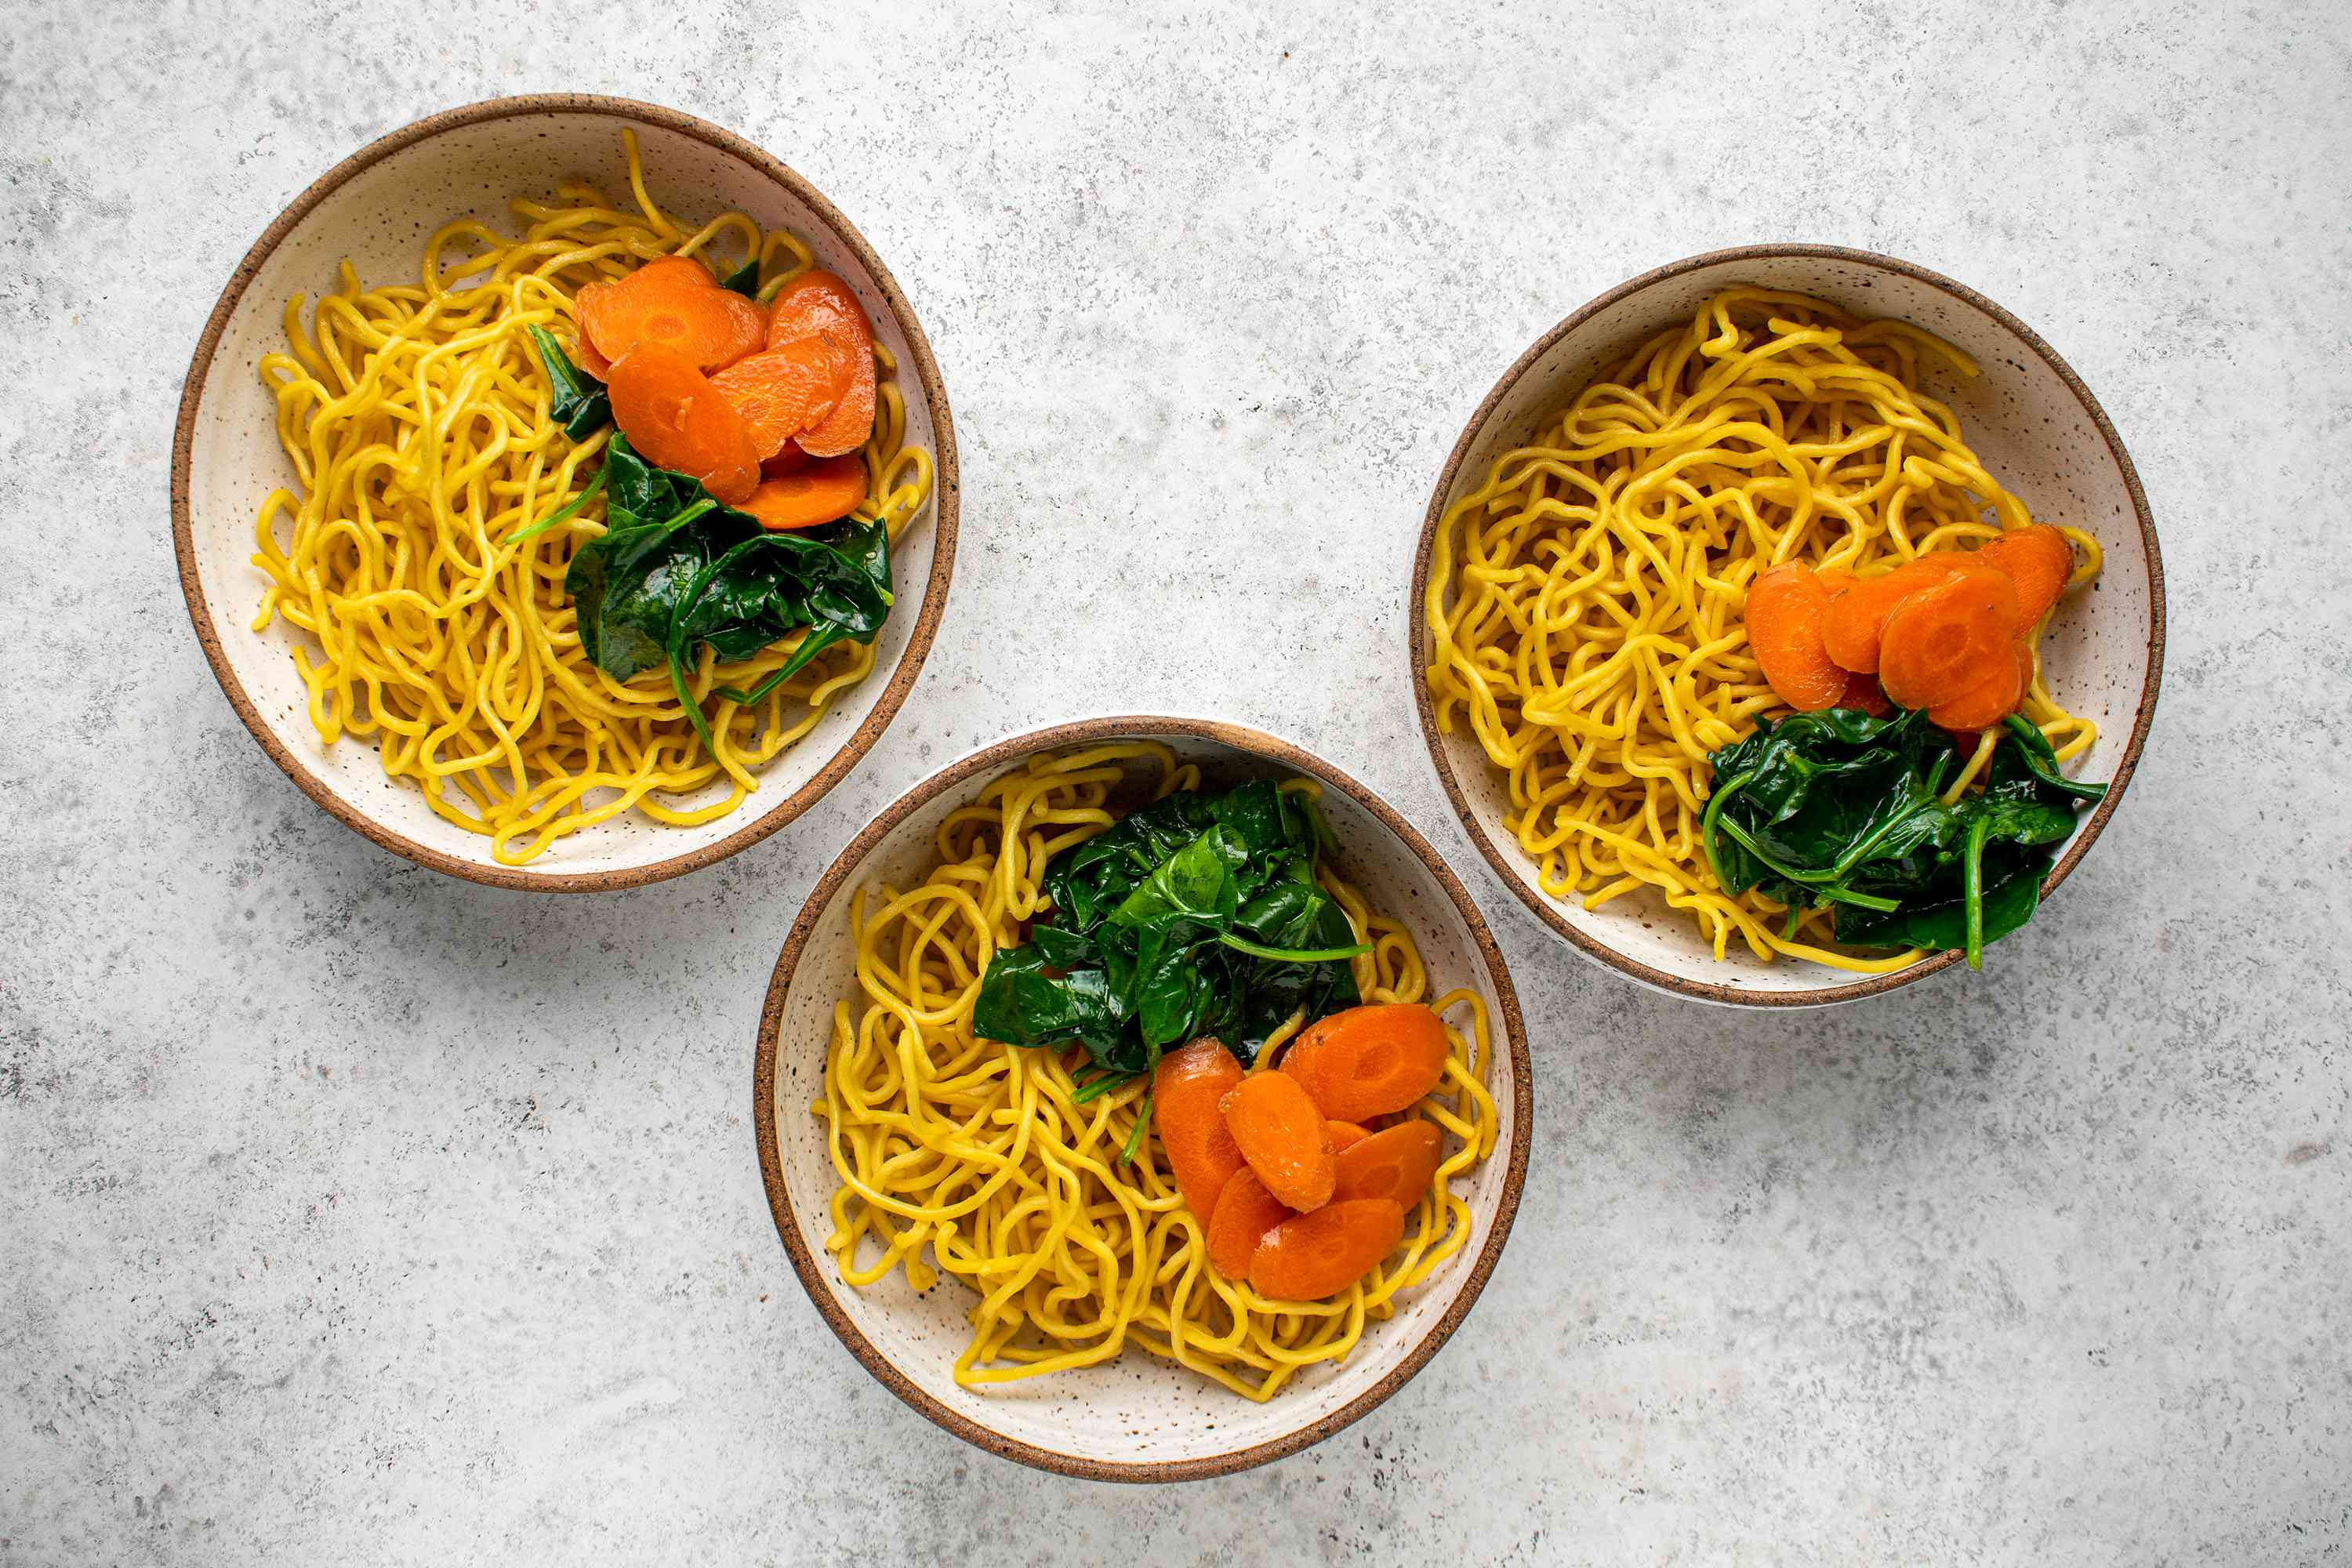 Divide the carrot slices and spinach into three portions and put in the bowls